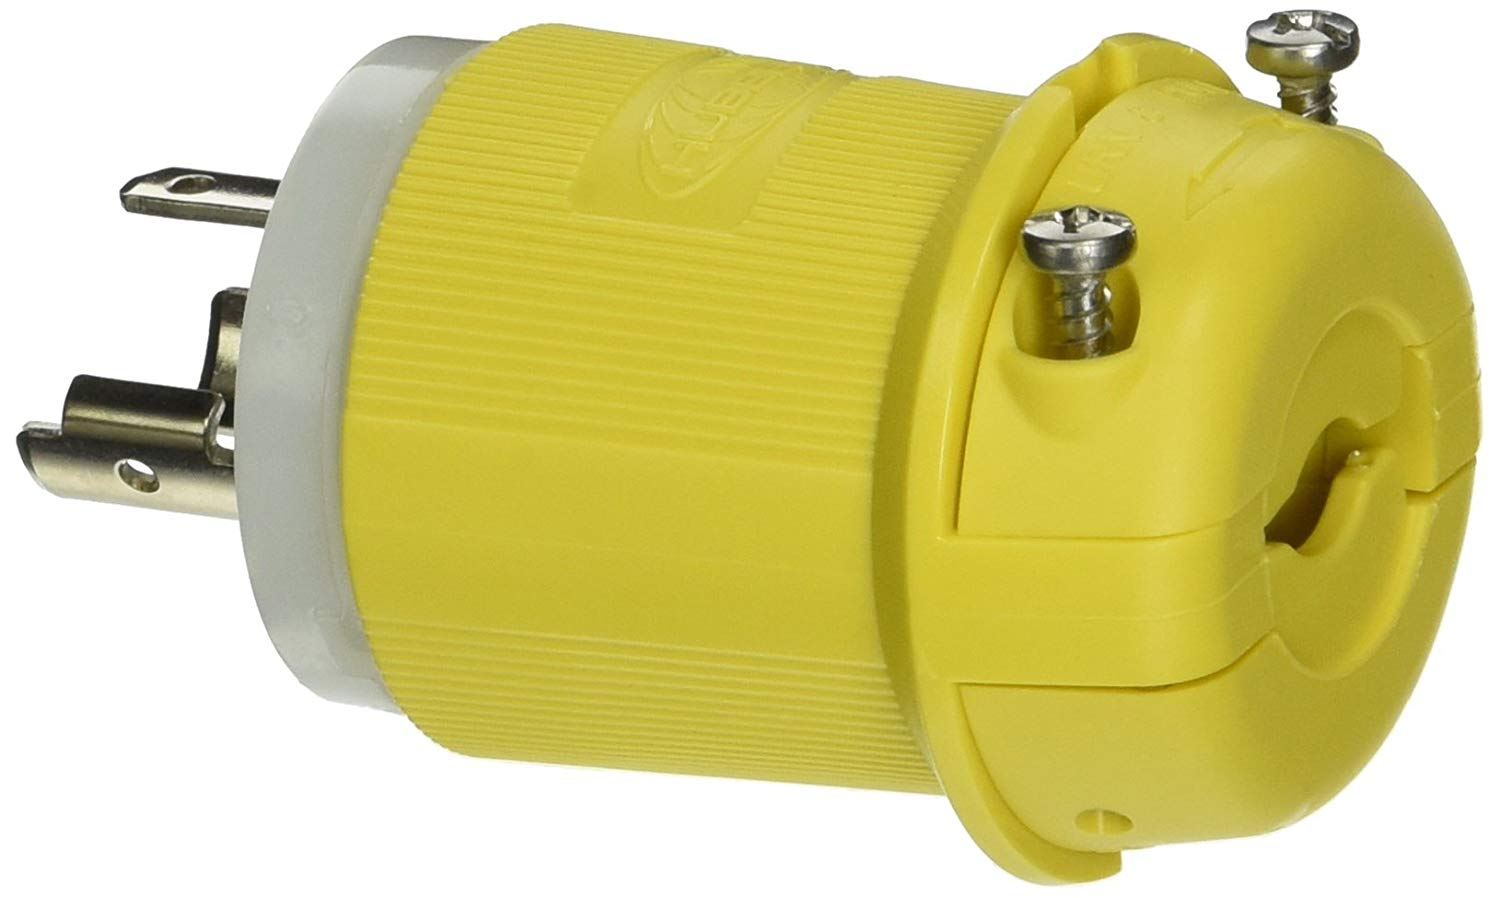 Hubbell Wiring Systems HBL23CM11 Twist-Lock Insulgrip Nylon Standard Plug with Locking Blade, 20 Amp, 125V, 2-Pole, 3-Wire Grounding, Yellow